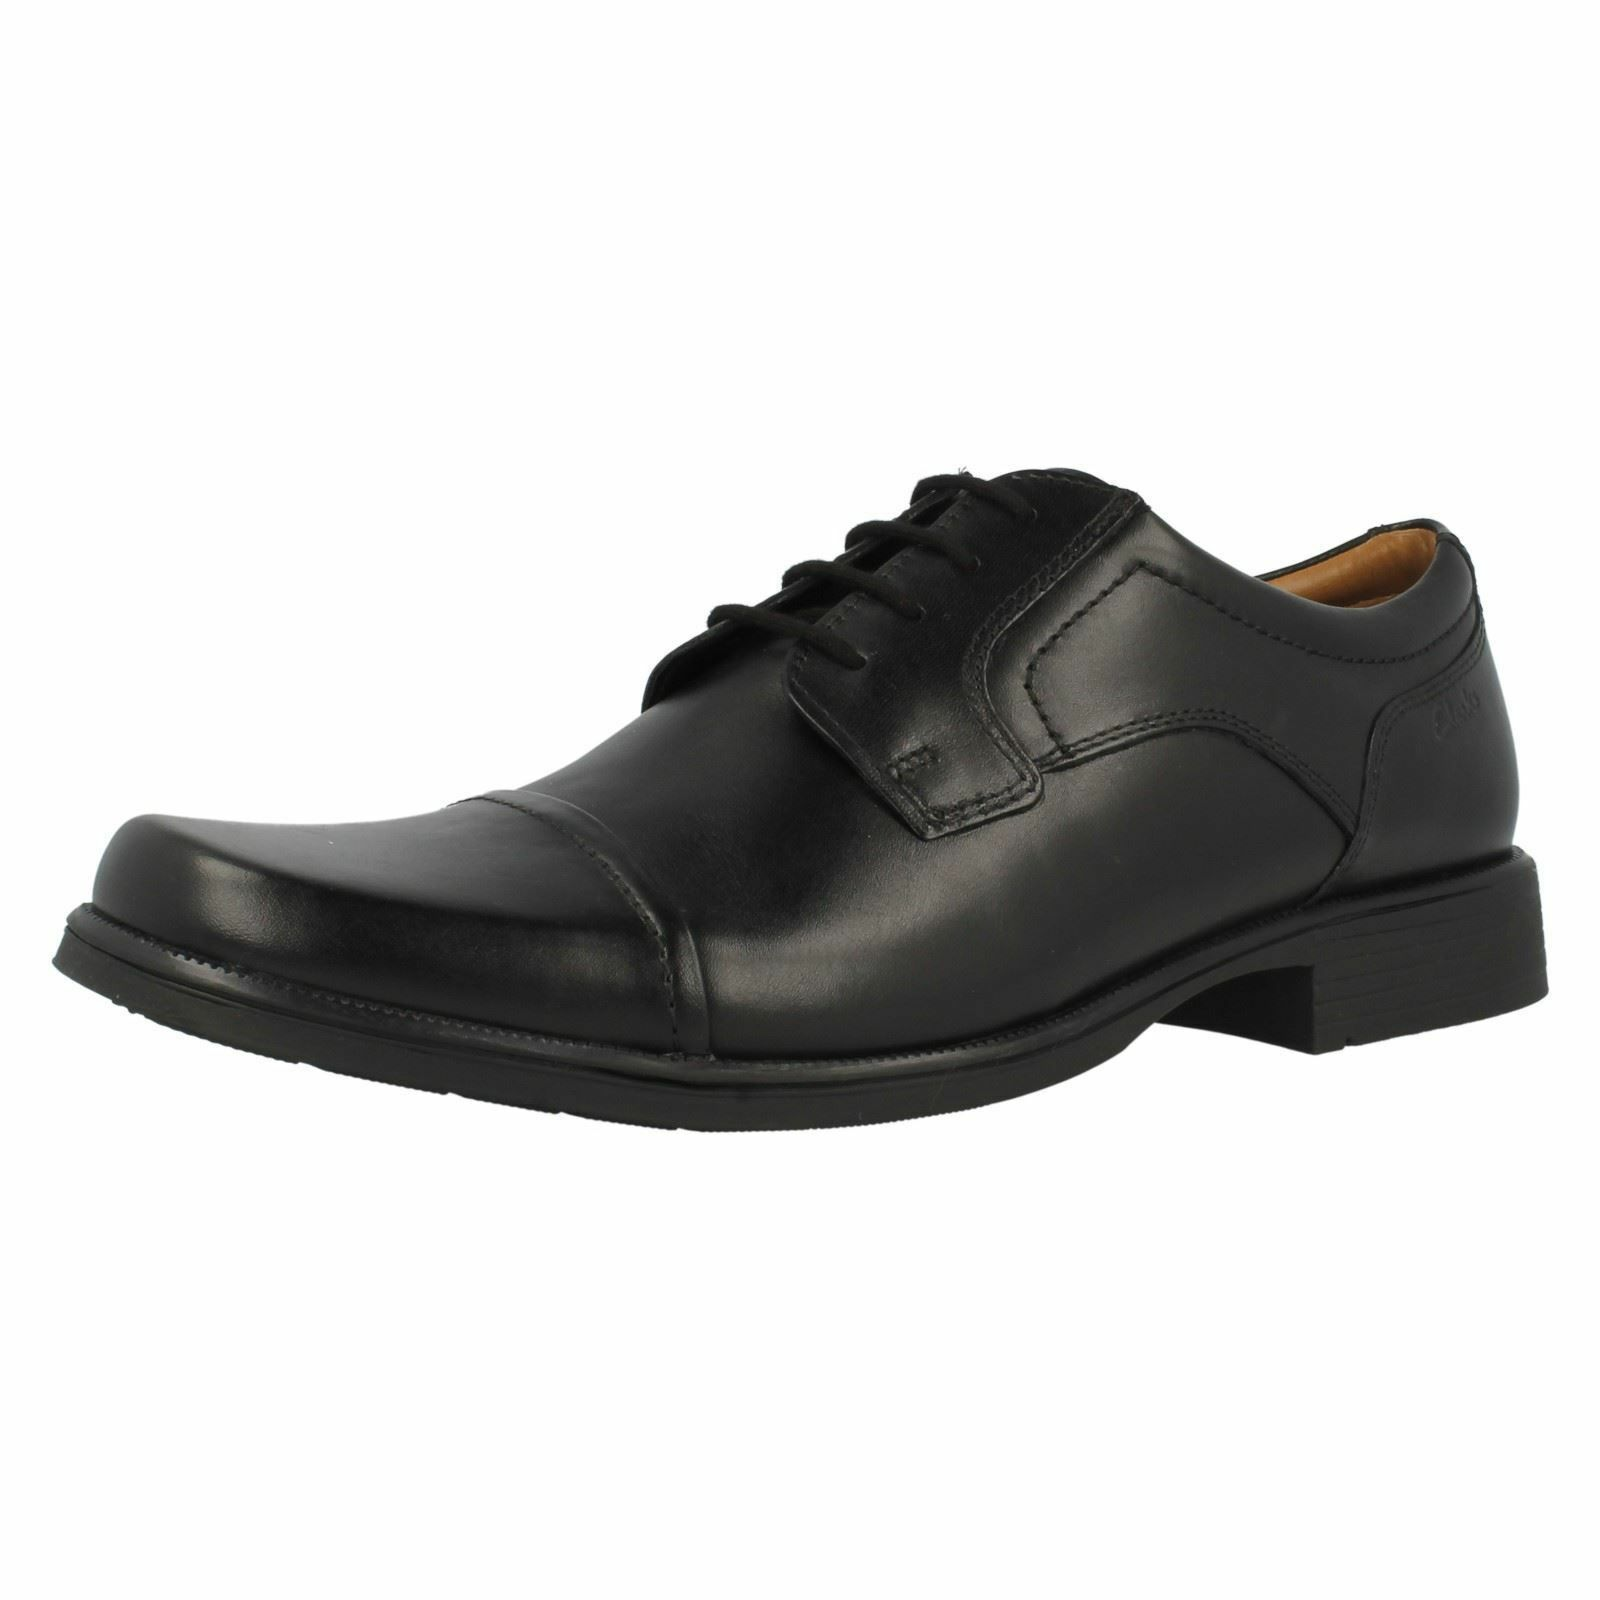 Mens Black Leather Lace Up Clarks 'Huckley Cap'- Great Sale Price!